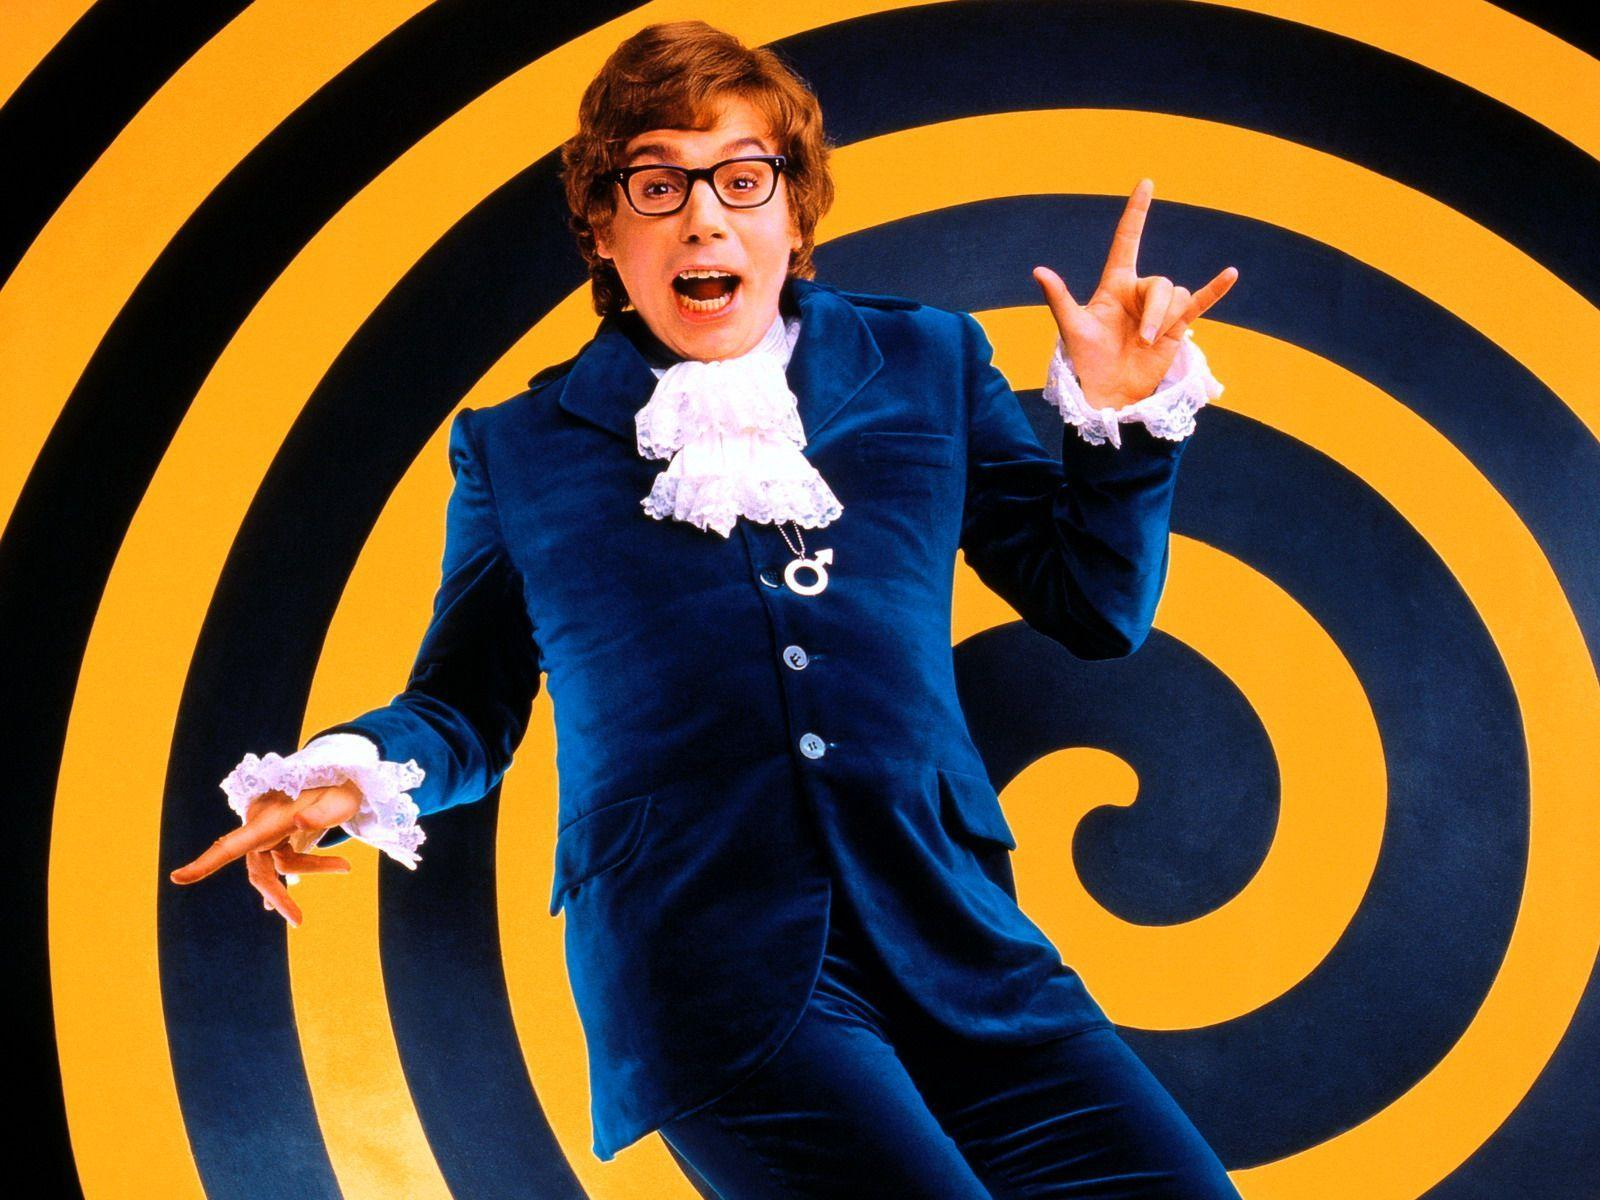 Pictures, Austin Powers: The Spy Who Shagged Me, Austin Powers